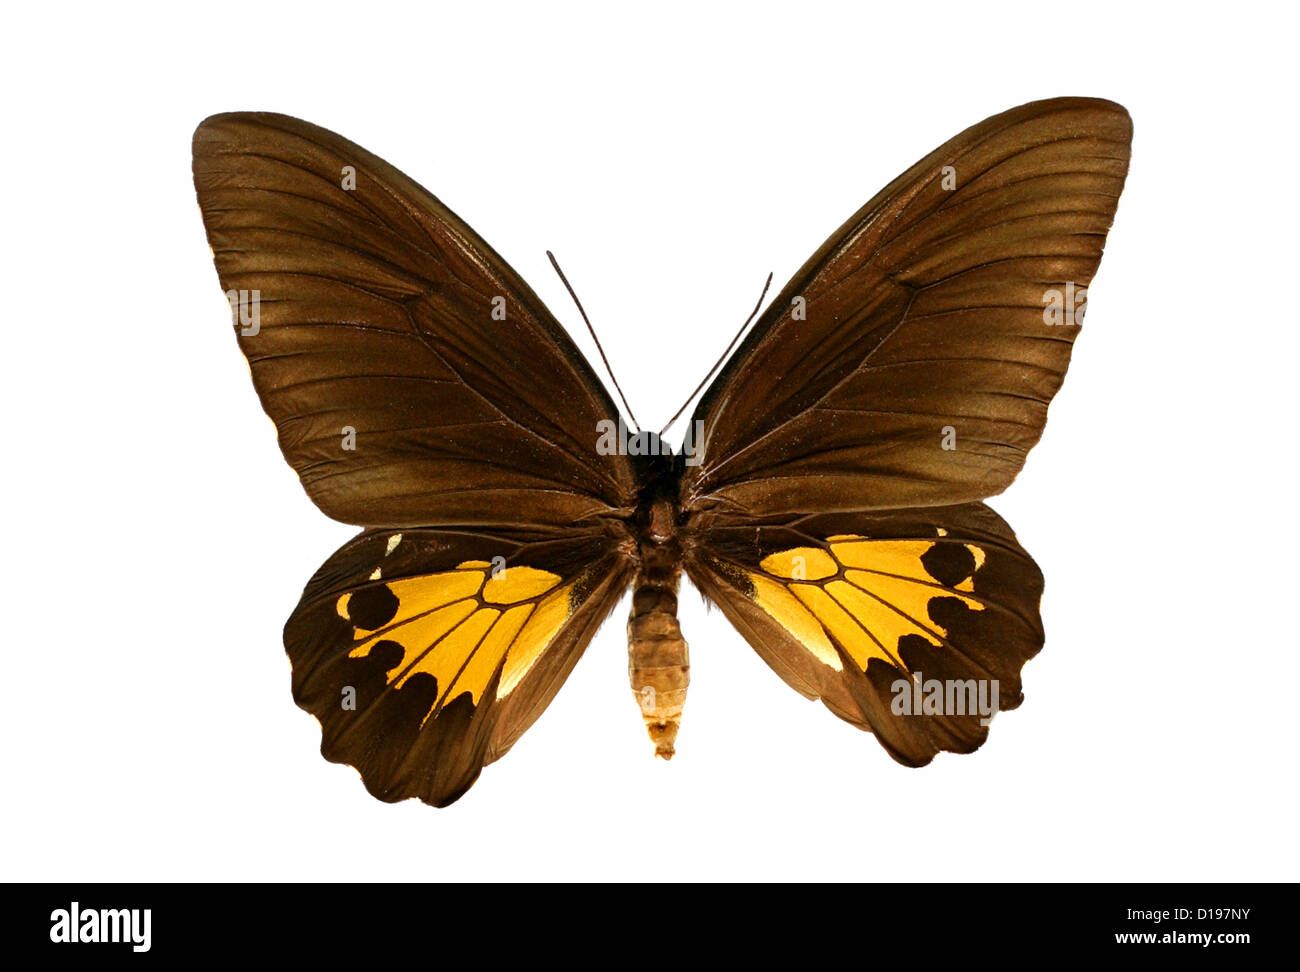 Common Birdwing Butterfly, Troides helena, Papilionidae, Lepidoptera. Female. India and Asia. - Stock Image